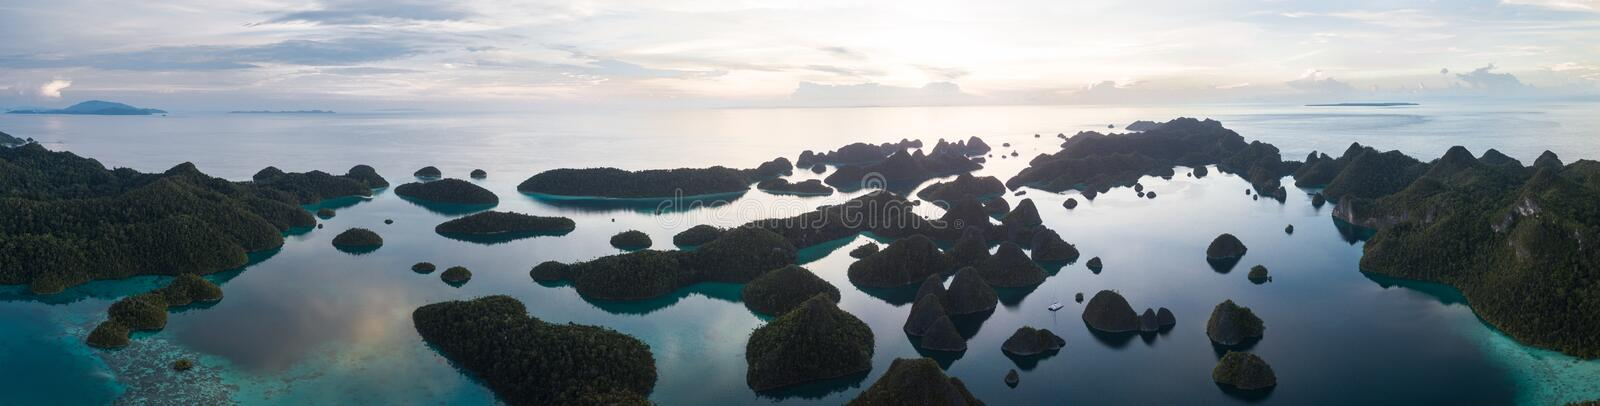 Aerial View of Gorgeous Islands in Wayag, Raja Ampat. The amazing limestone islands found in Wayag, Raja Ampat, Indonesia, are surrounded by healthy coral reefs royalty free stock photography